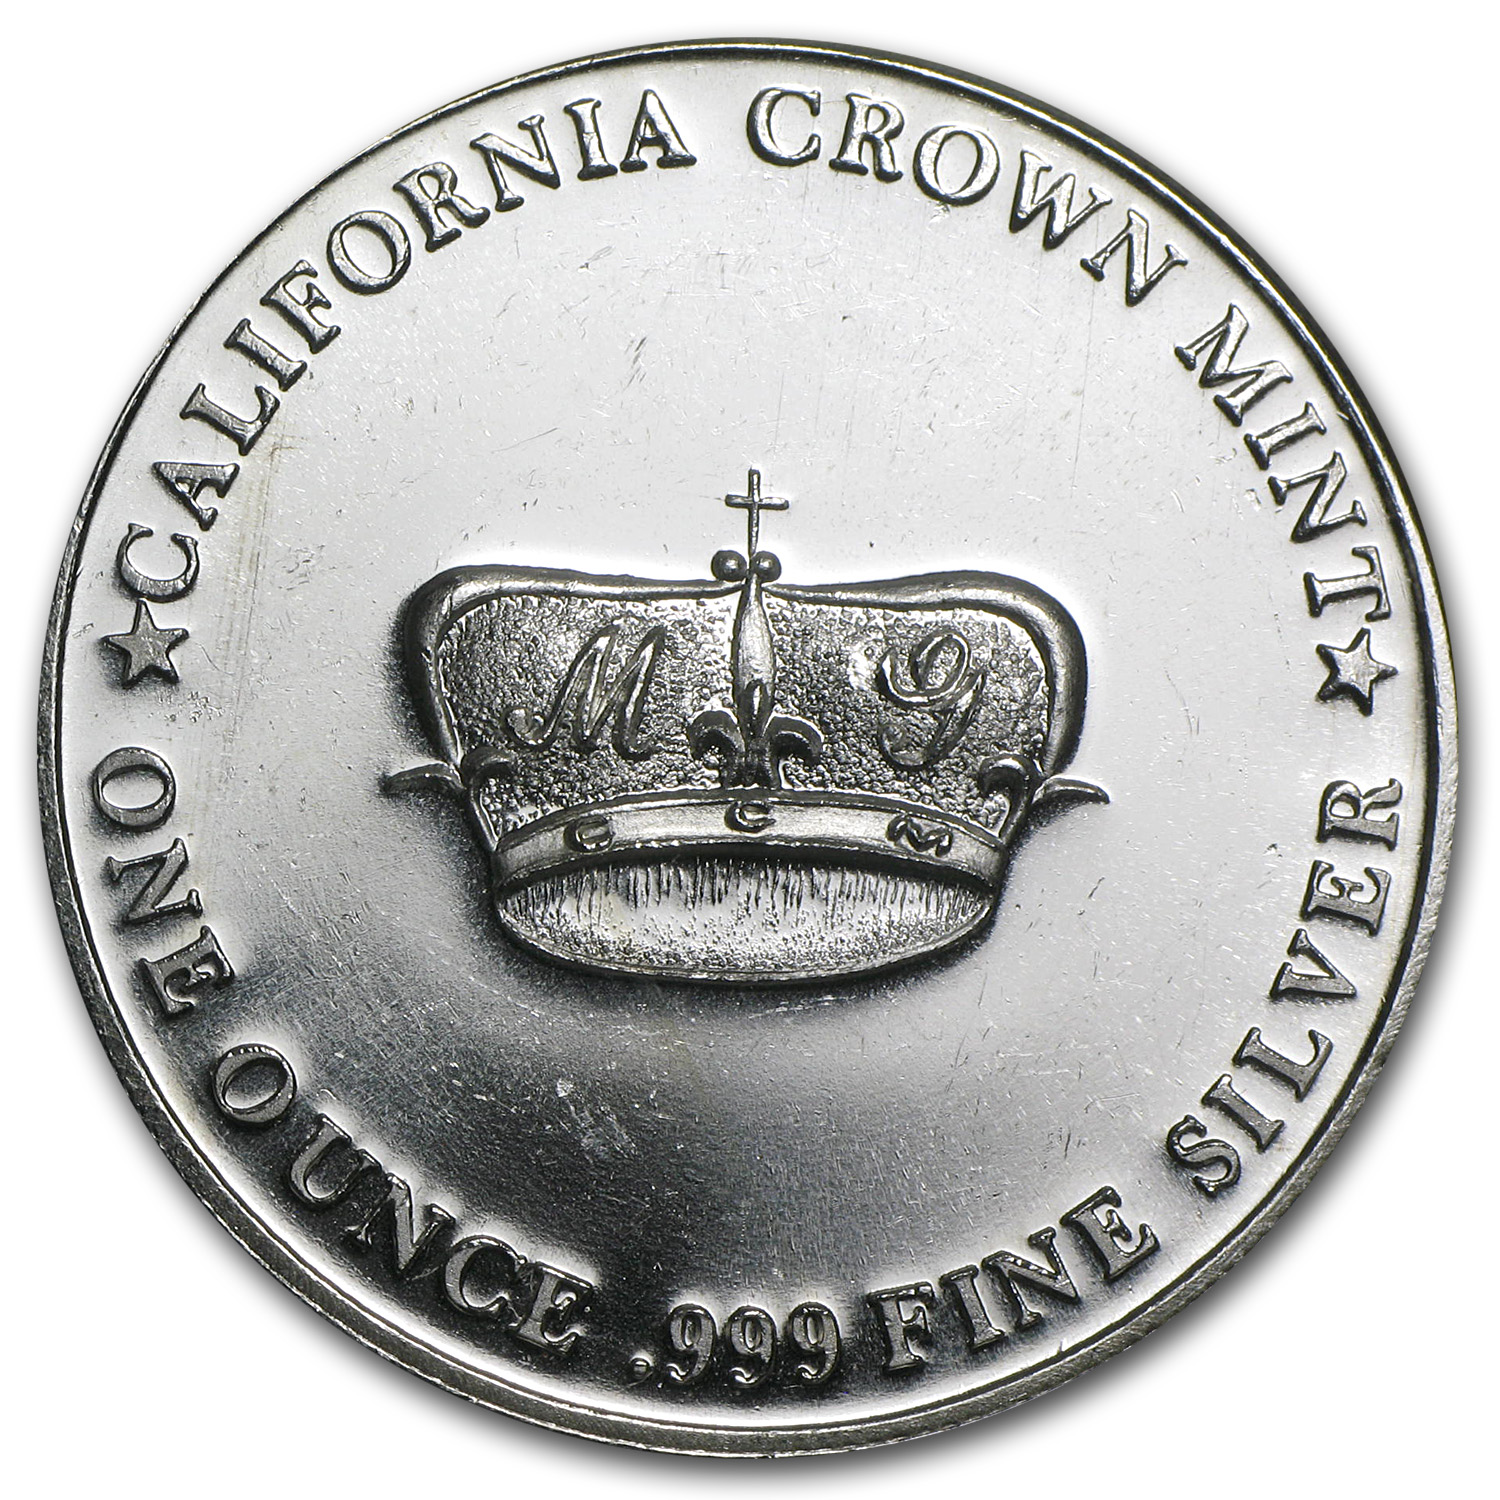 1 oz Silver Rounds - MG Crown